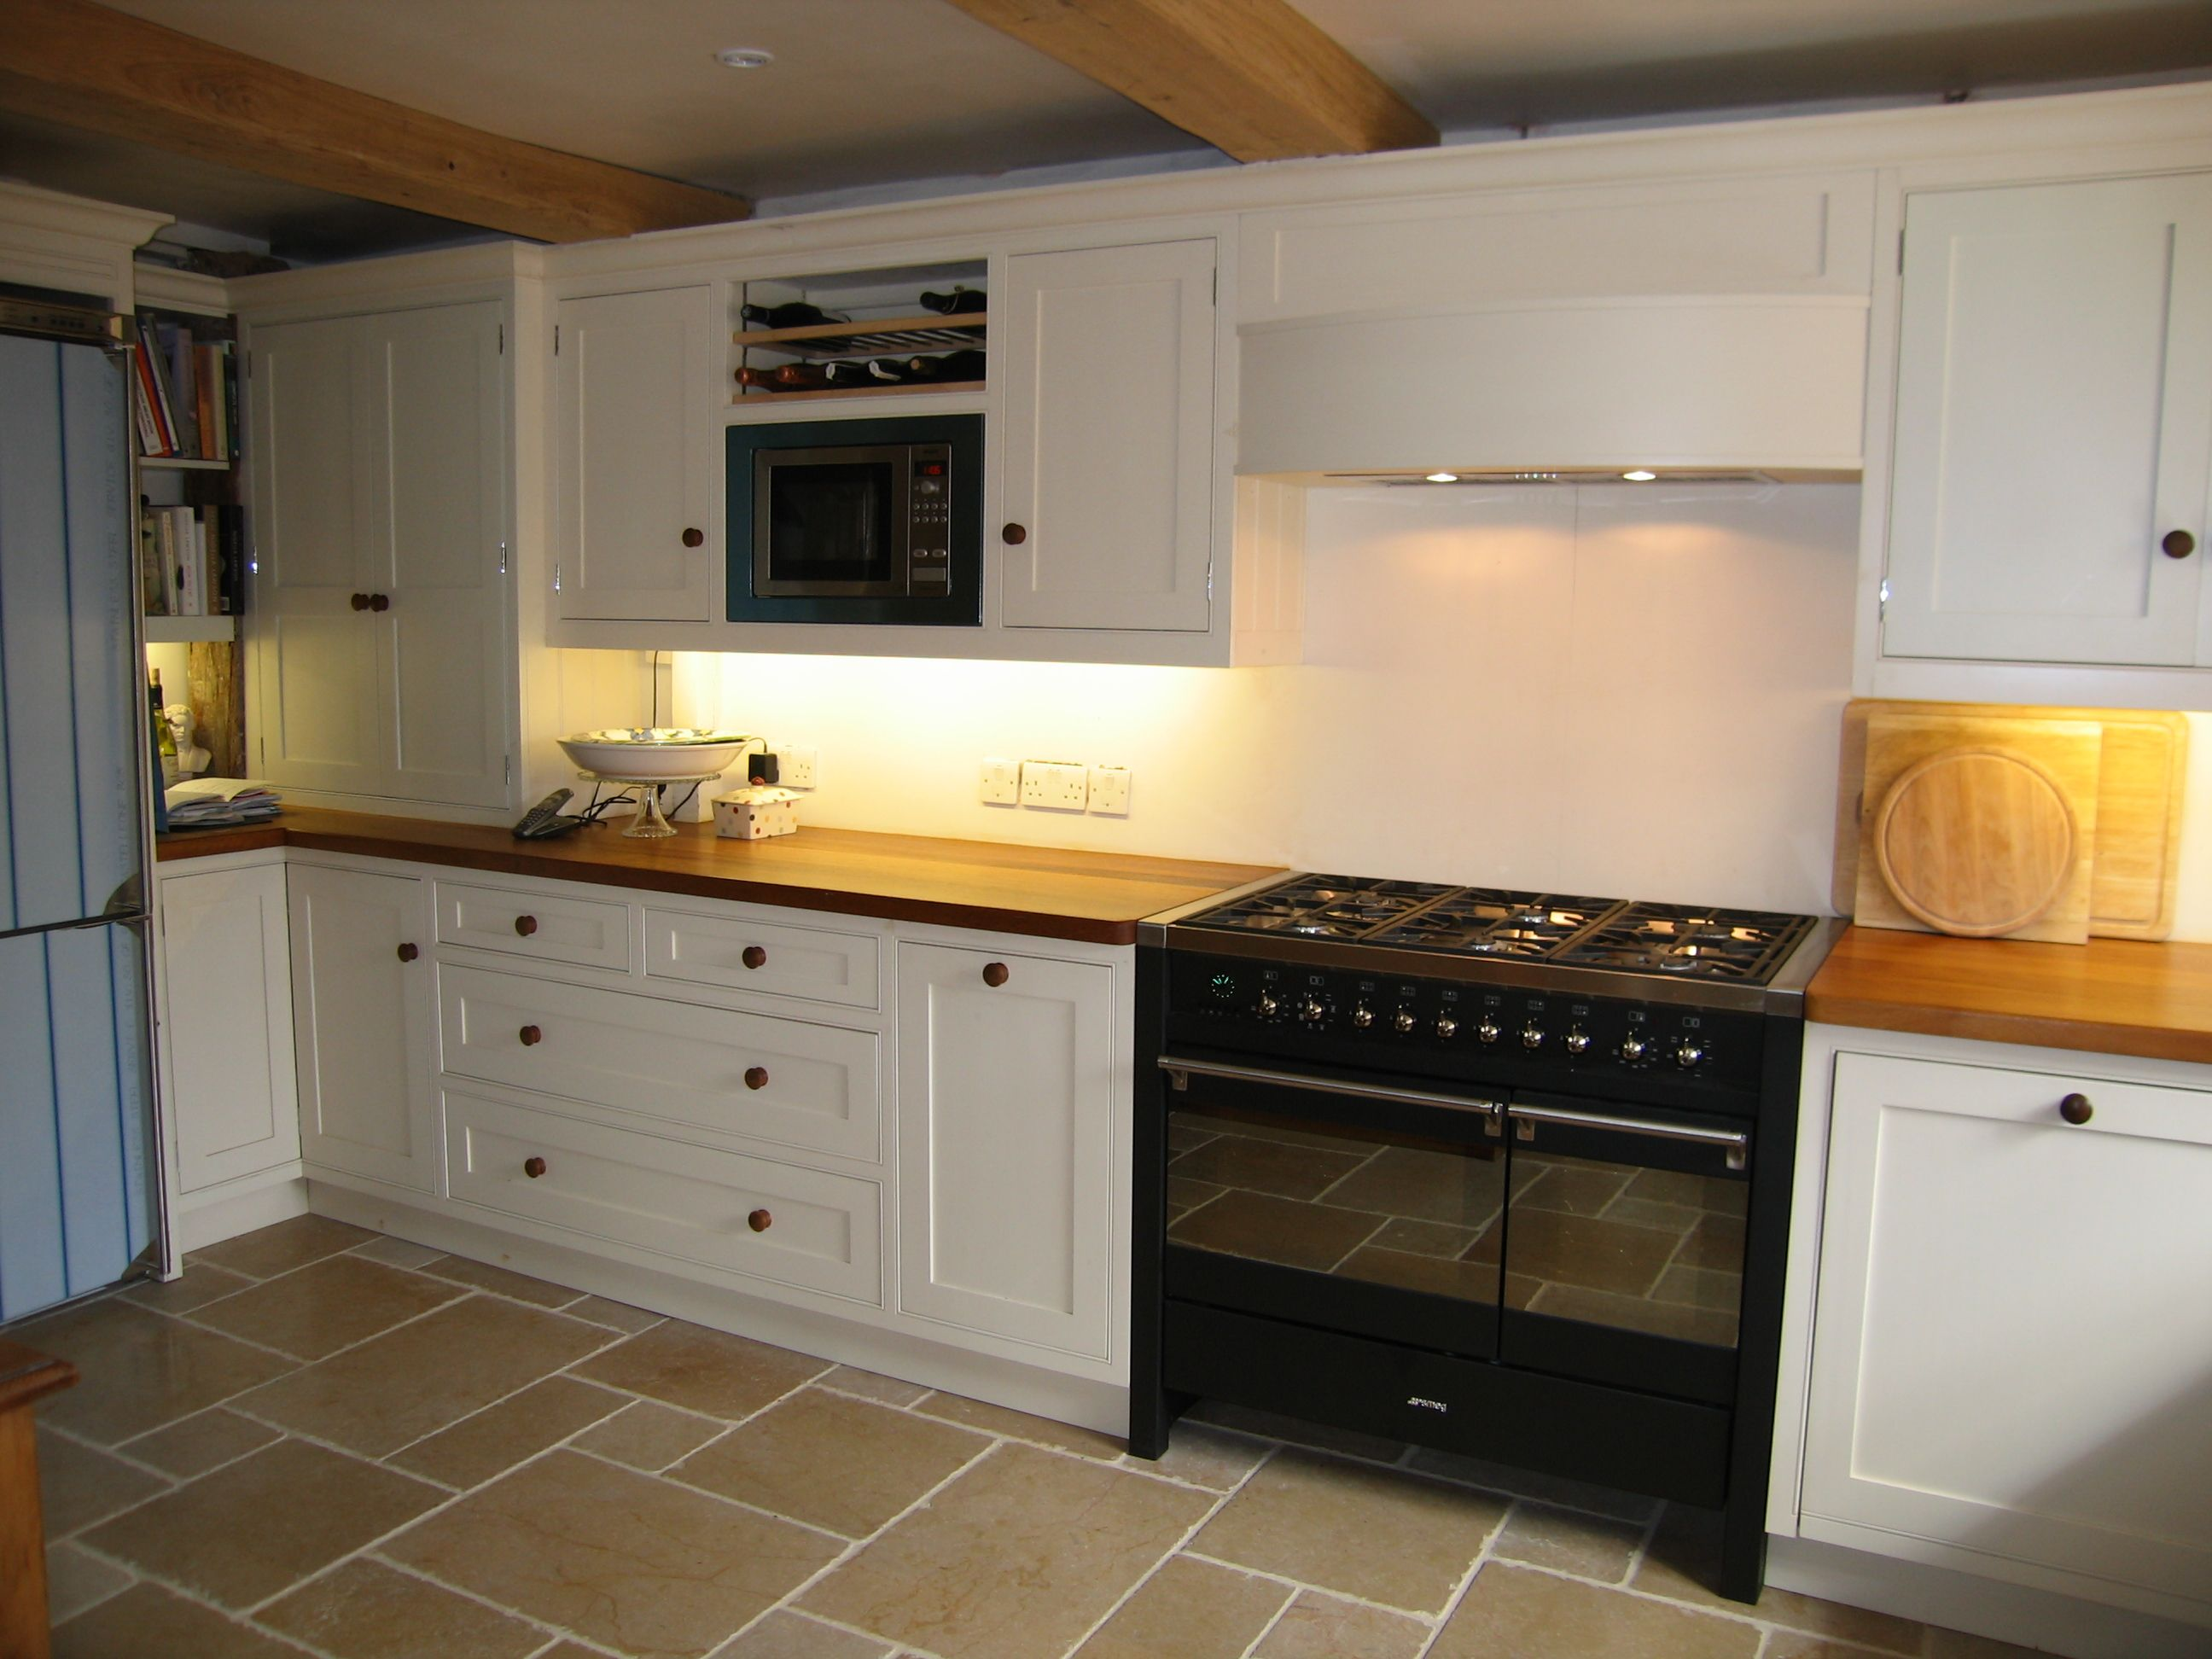 23 best Range Cookers and Agas images on Pinterest | Bespoke ...